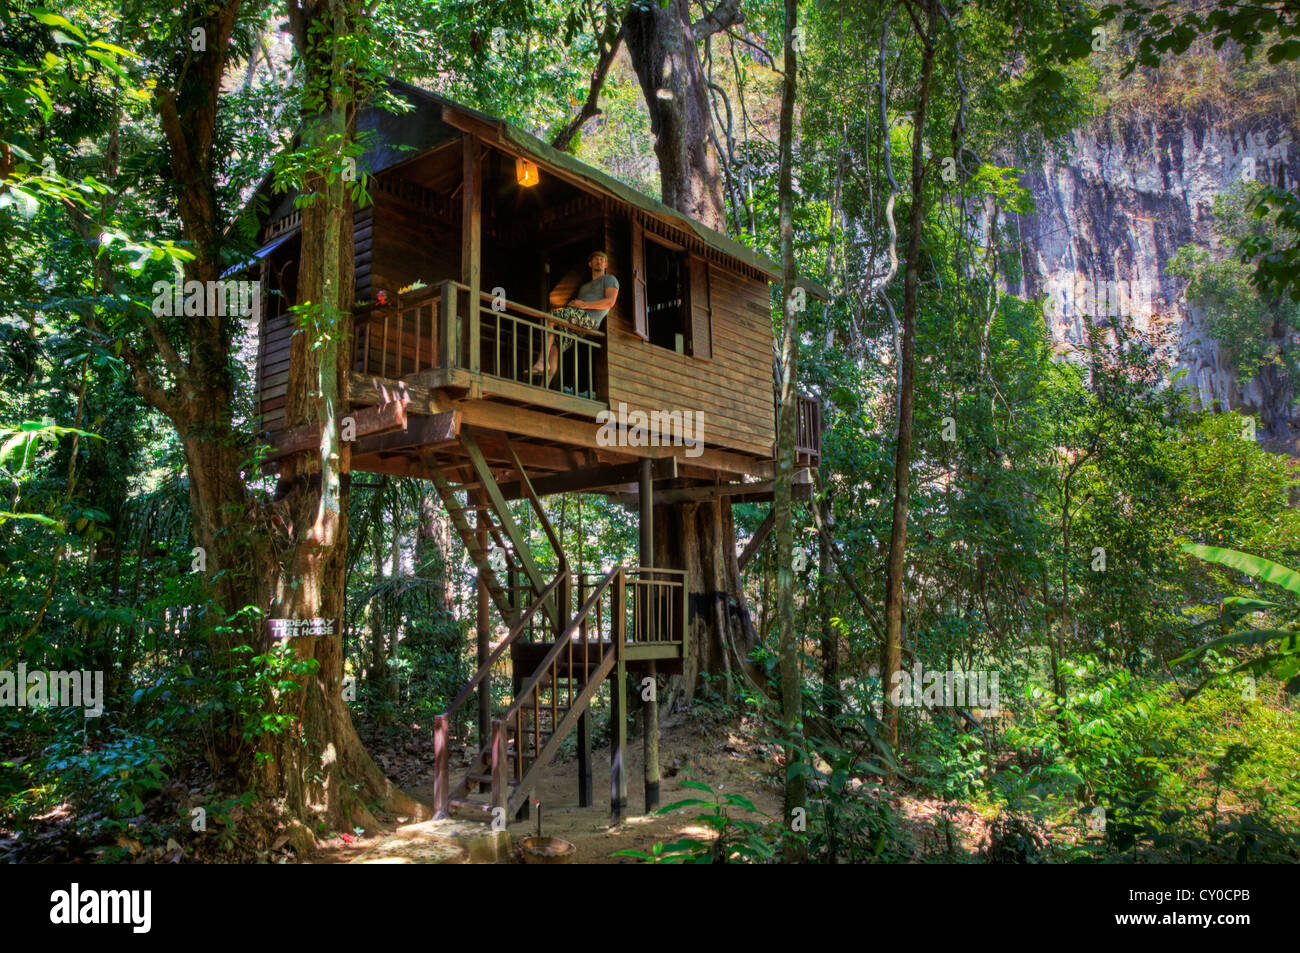 TREE HOUSES are the specialty of OUR JUNGLE HOUSE a lodge near KHAO SOK NATIONAL PARK - SURATHANI PROVENCE, THAILAND - Stock Image